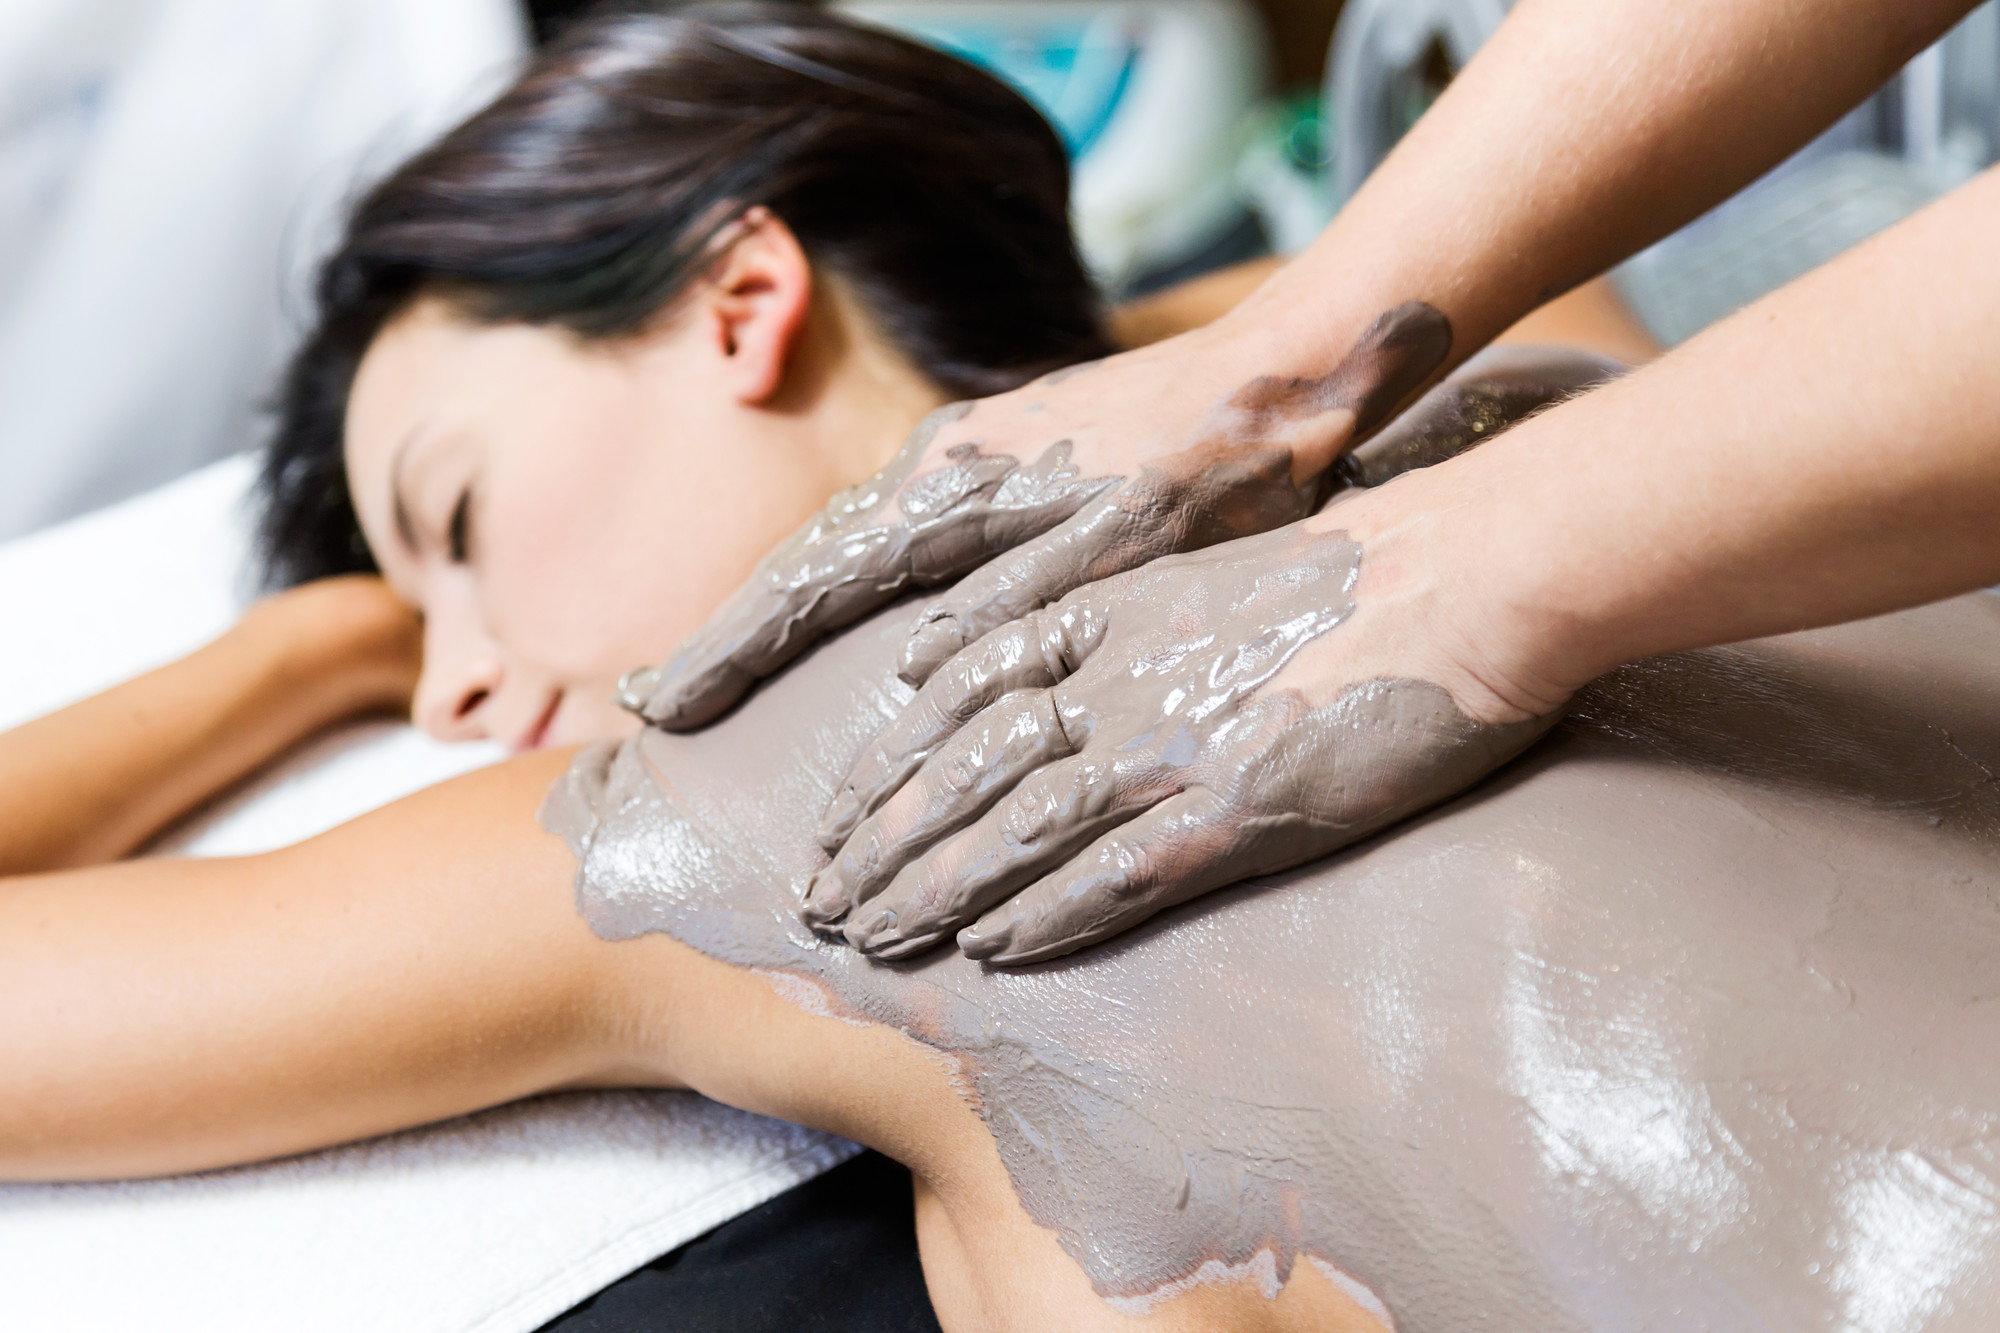 Portrait of beautiful young woman having clay body mask apply by beautician. Detox ritual. Mineral mud bathing with SpaDreams